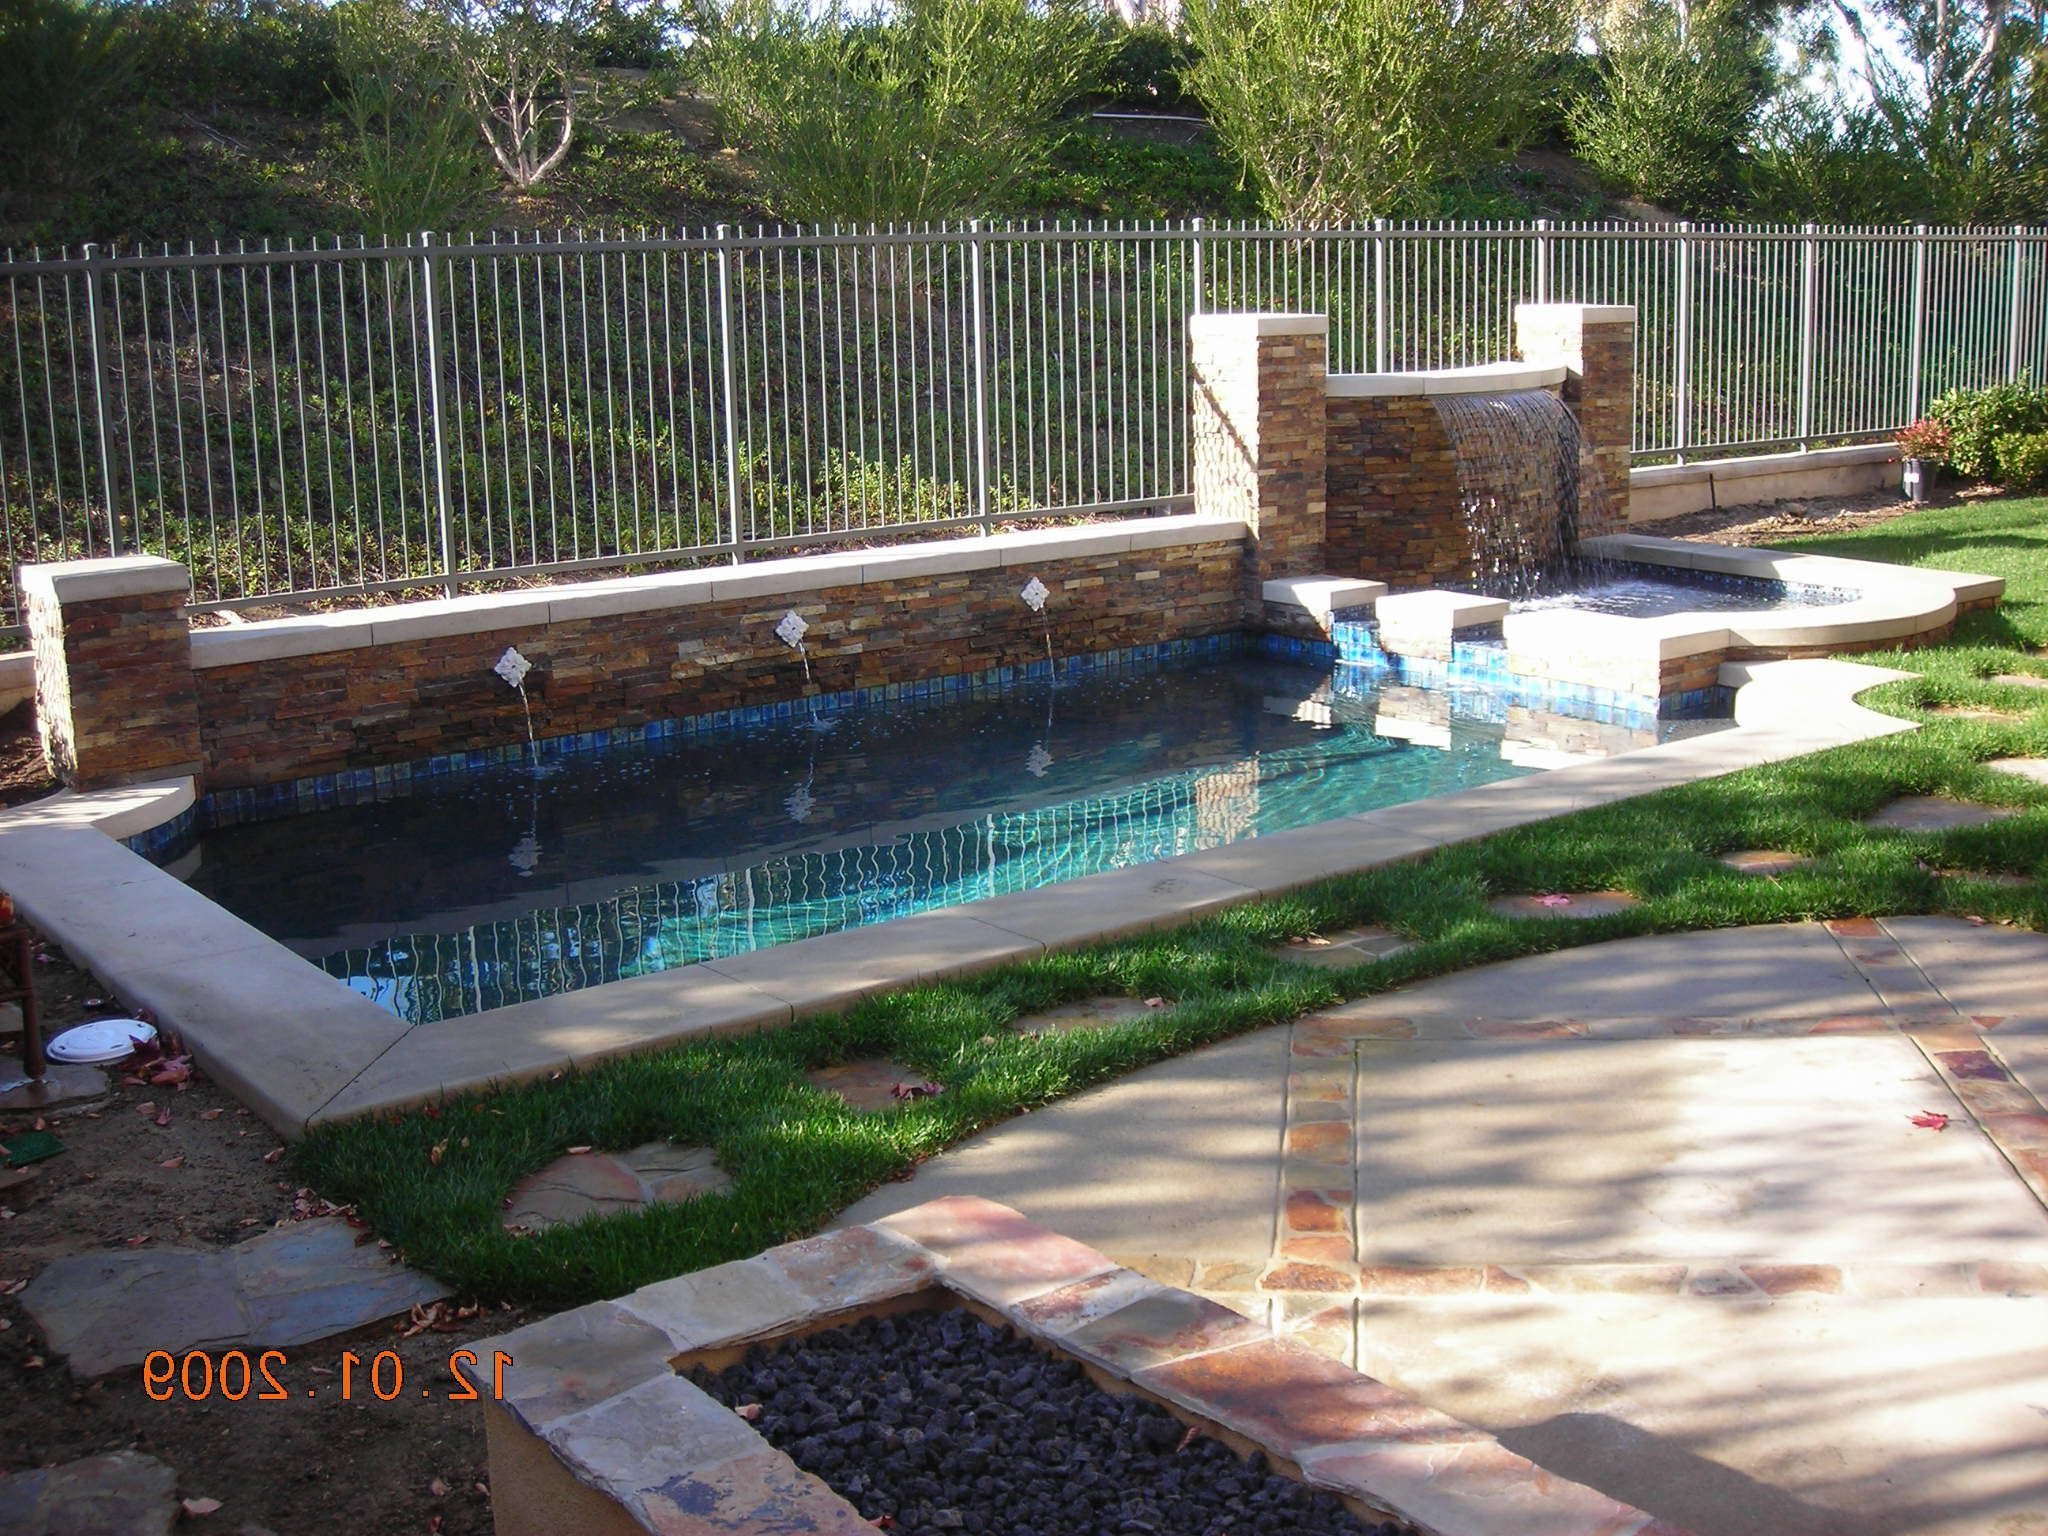 Best Small Pool For Backyard Small Pools Small Backyards Pacific Paradise Pools From Best Backyard Pool Small Backyard Pools Paradise Pools